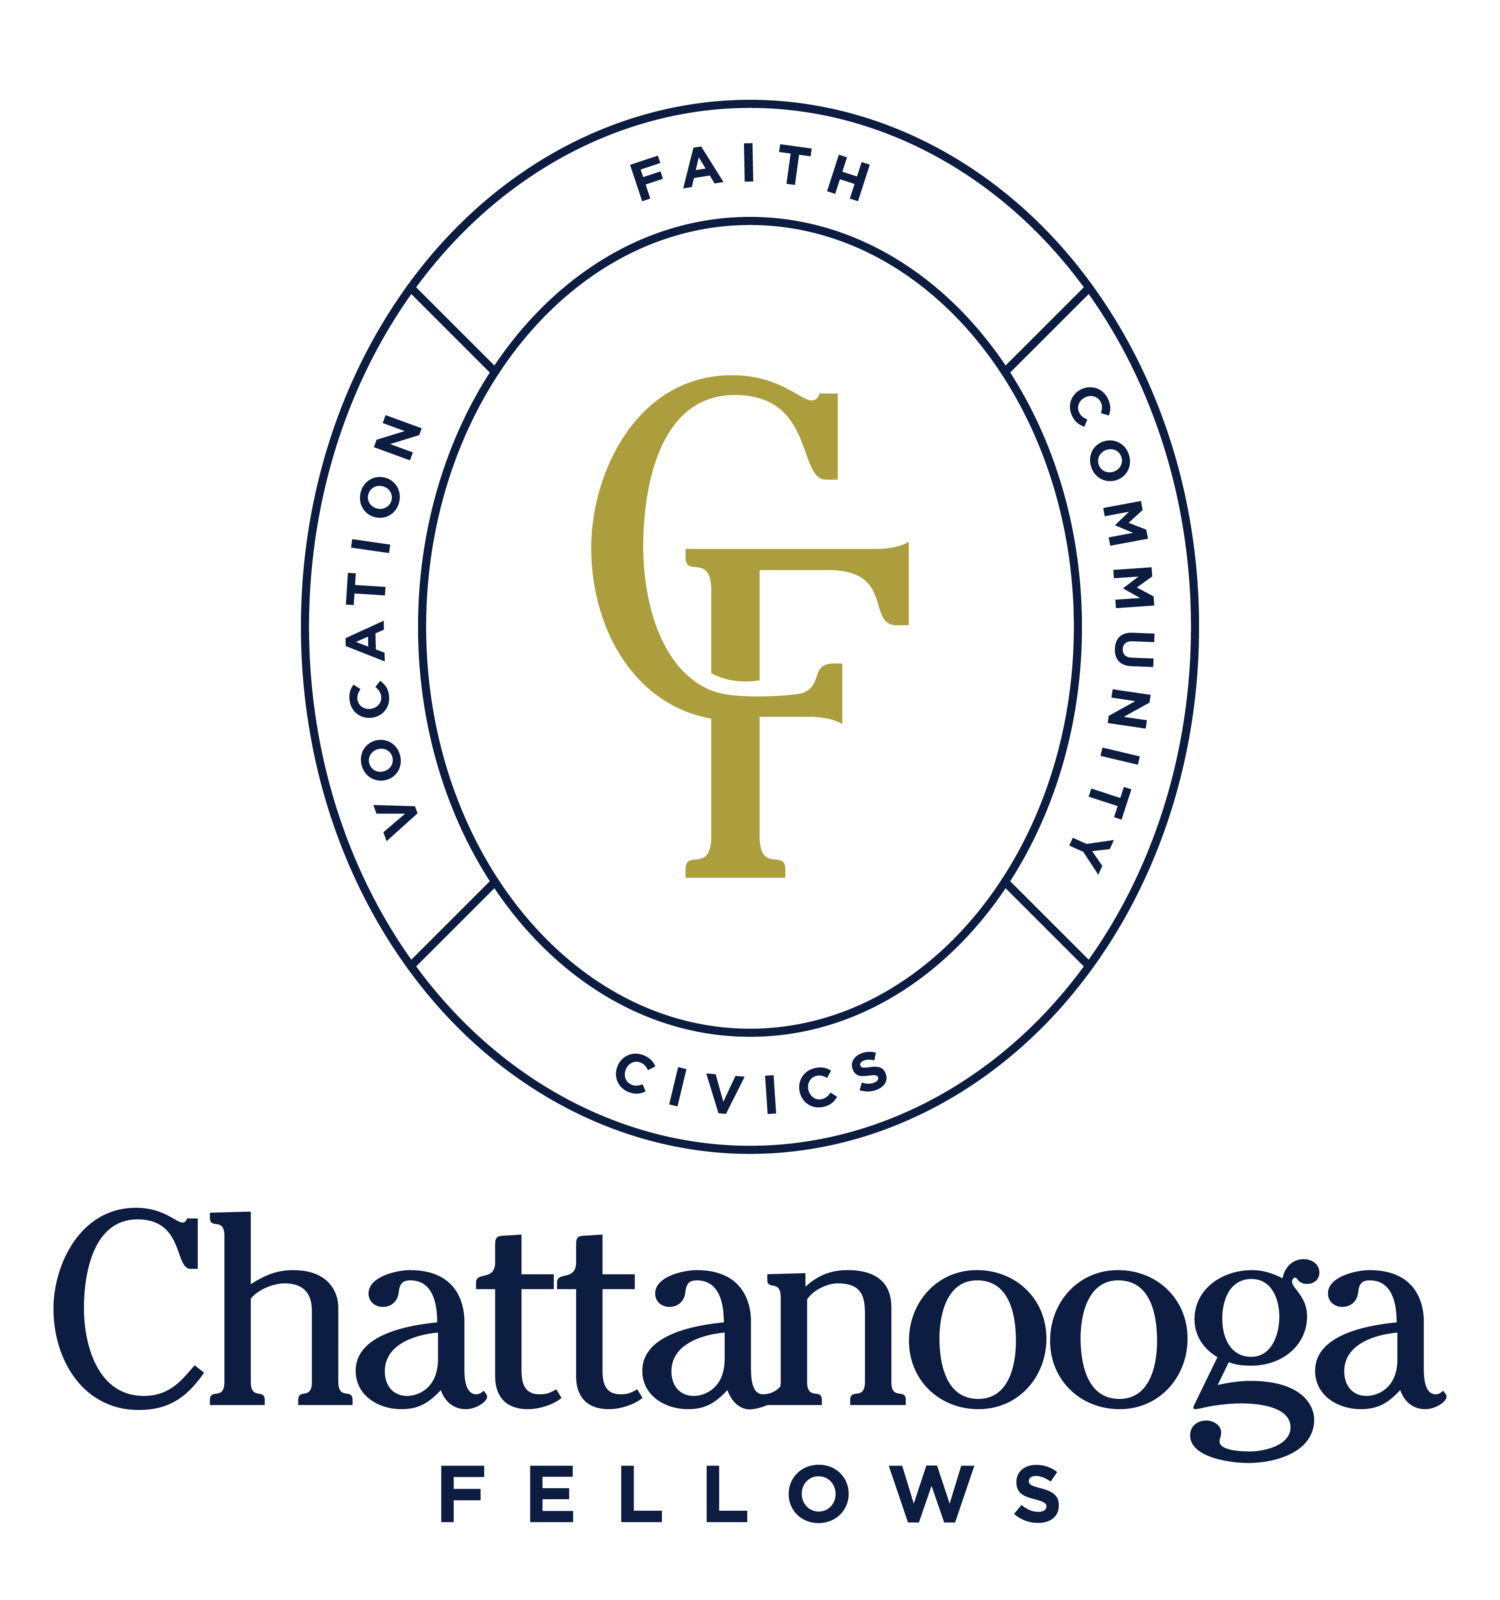 Chattanooga Fellows